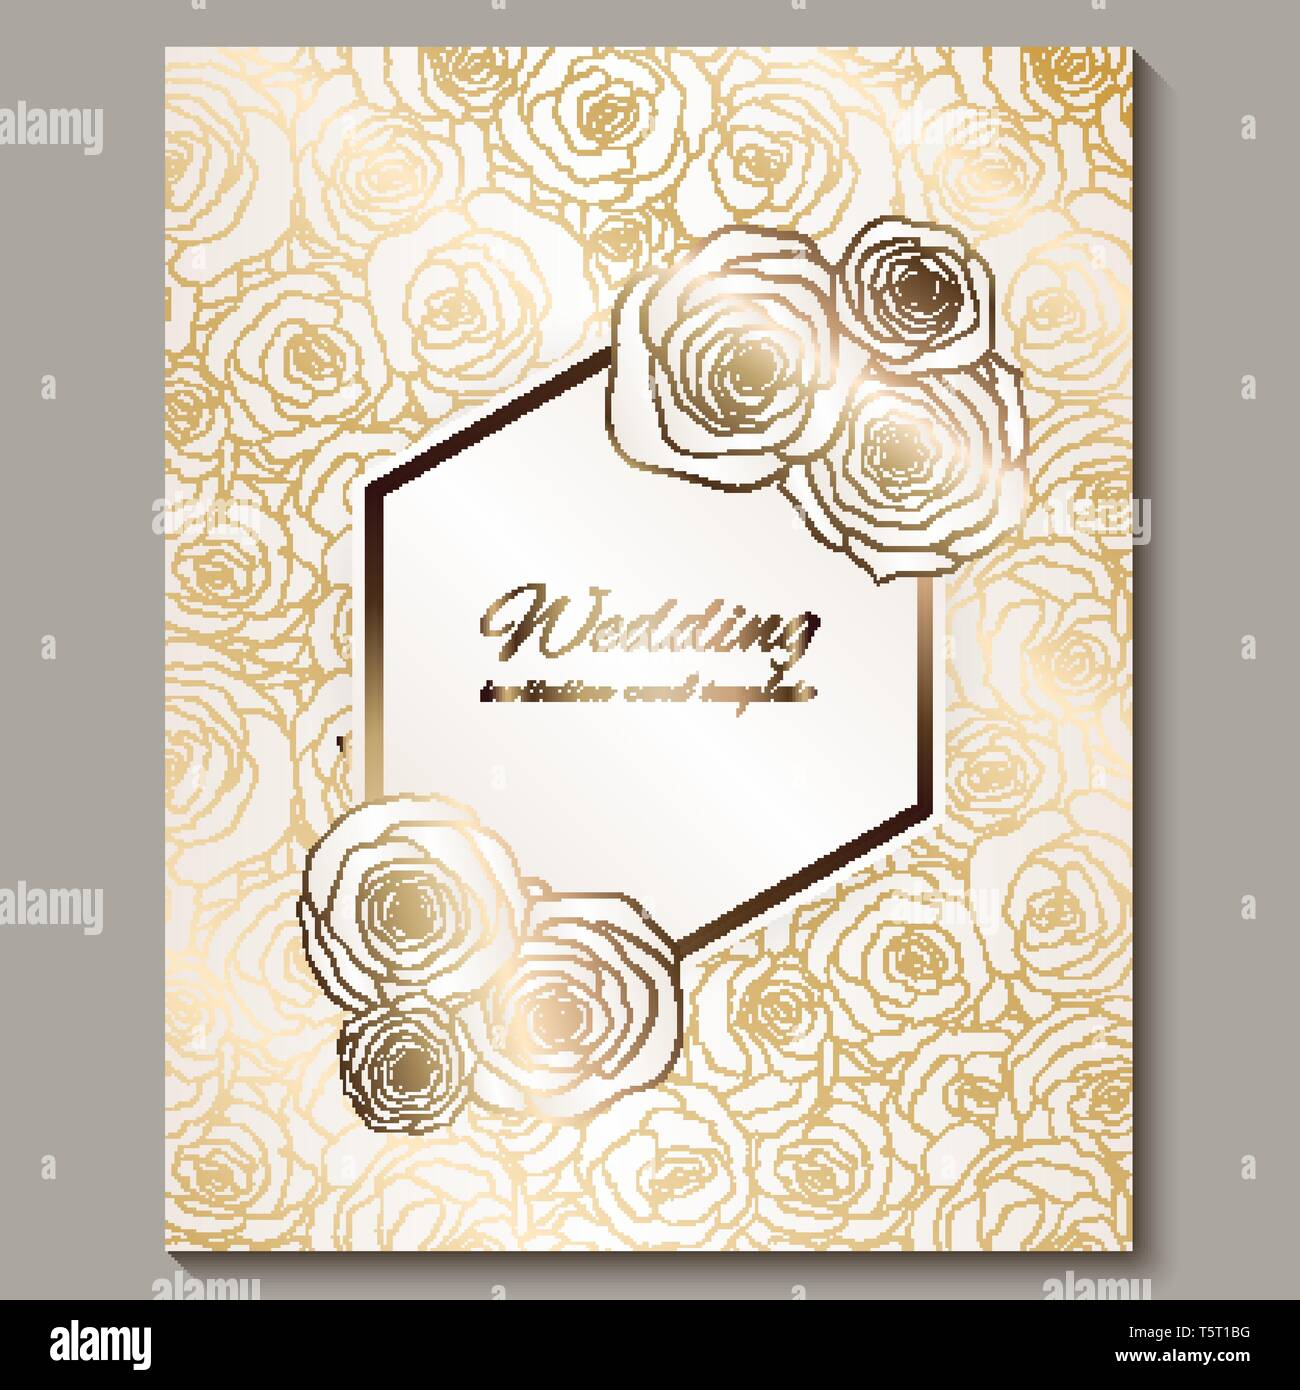 luxury gold vintage wedding invitation floral background with place for text lacy foliage made of roses with golden shiny gradient victorian wallpa stock vector image art alamy https www alamy com luxury gold vintage wedding invitation floral background with place for text lacy foliage made of roses with golden shiny gradient victorian wallpa image244546388 html